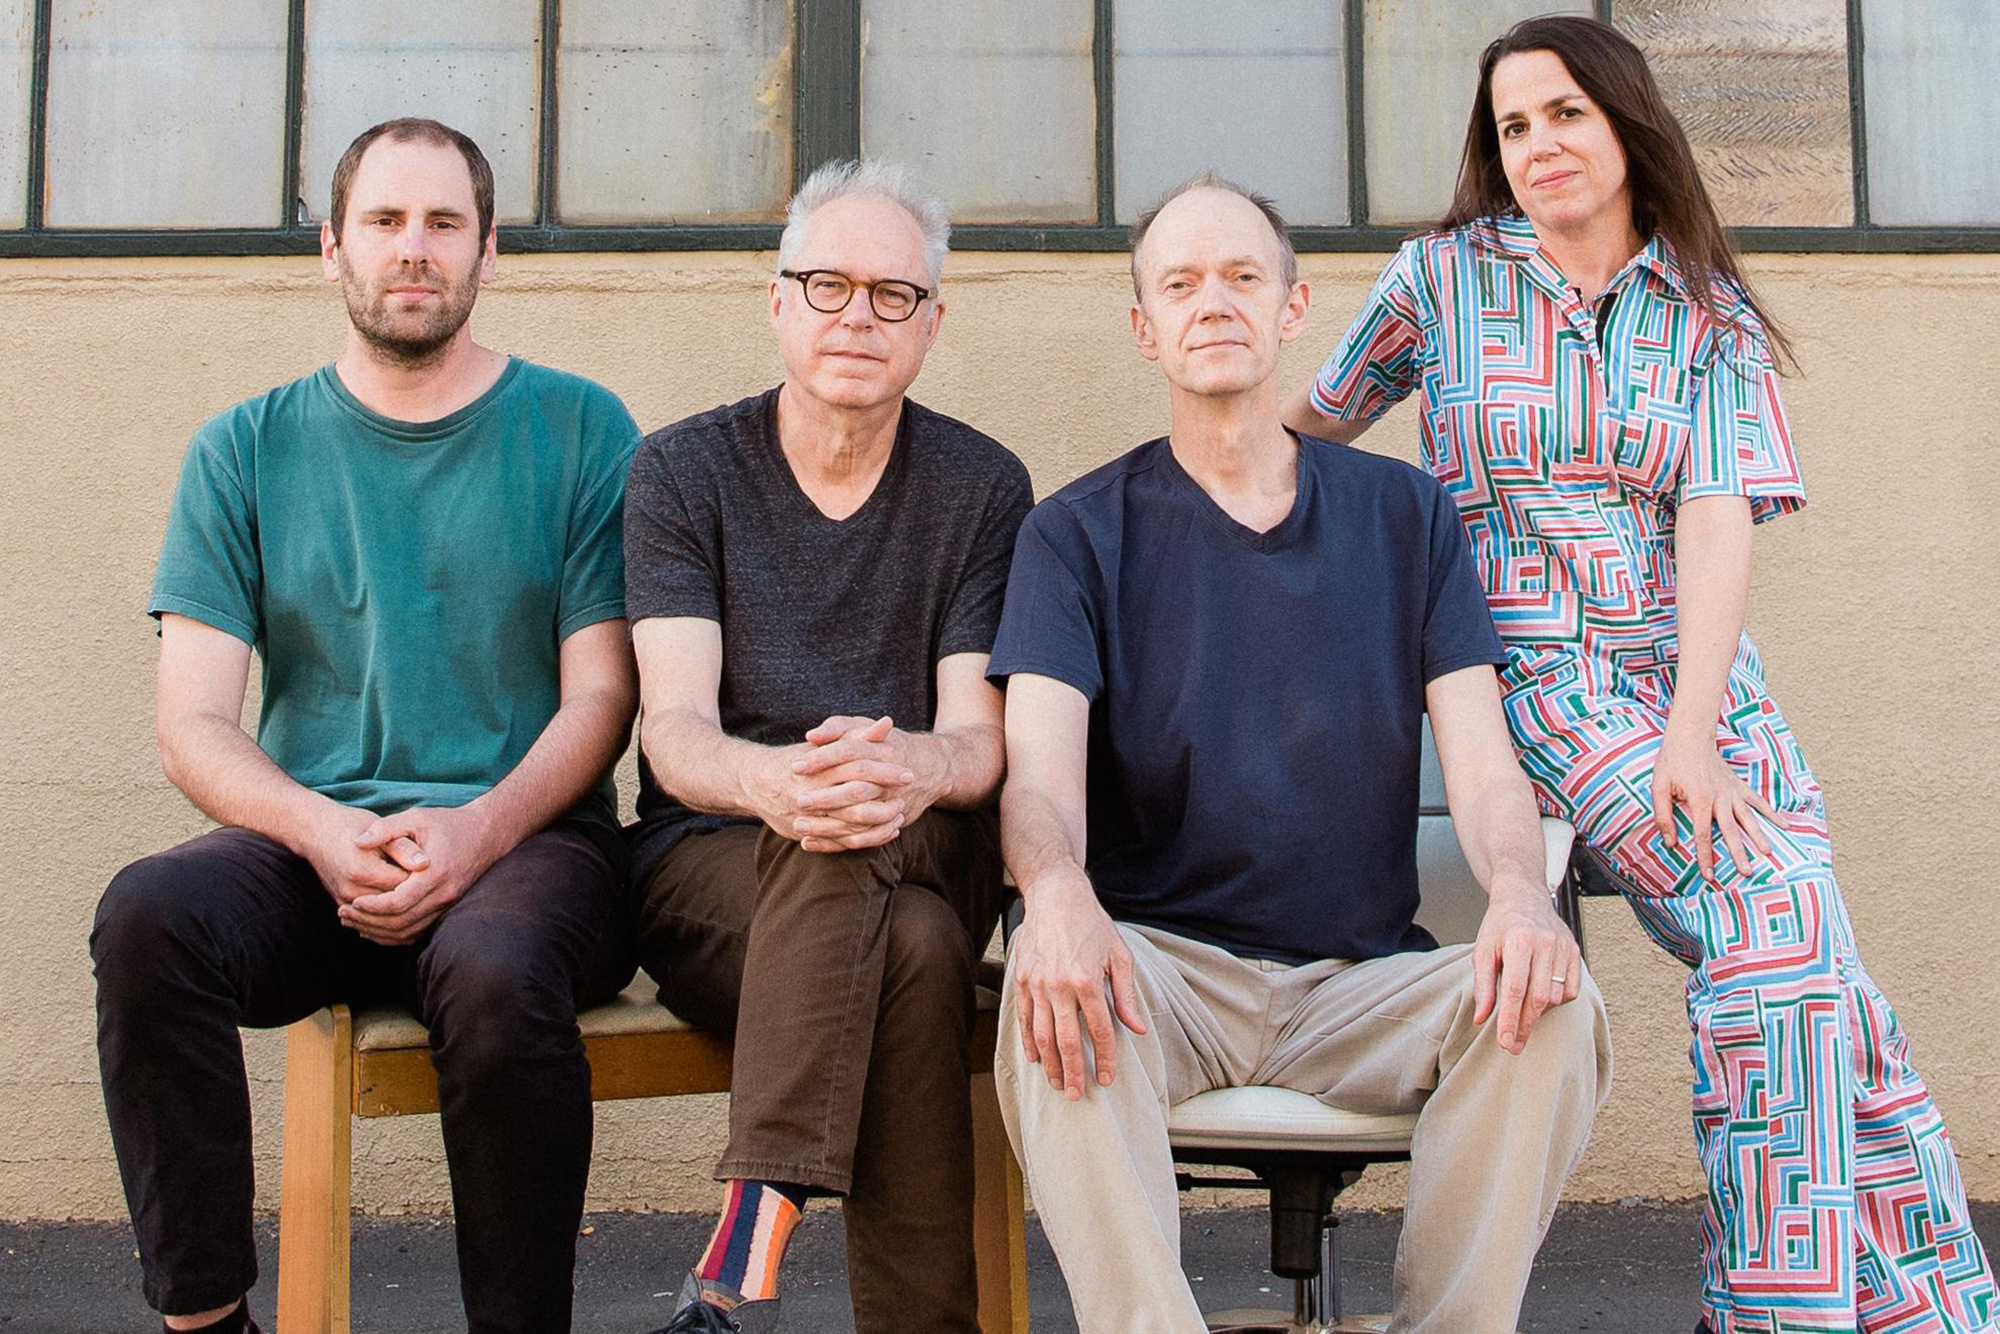 Harmony  Is About As Bill Frisell As a Bill Frisell Recording Can Be